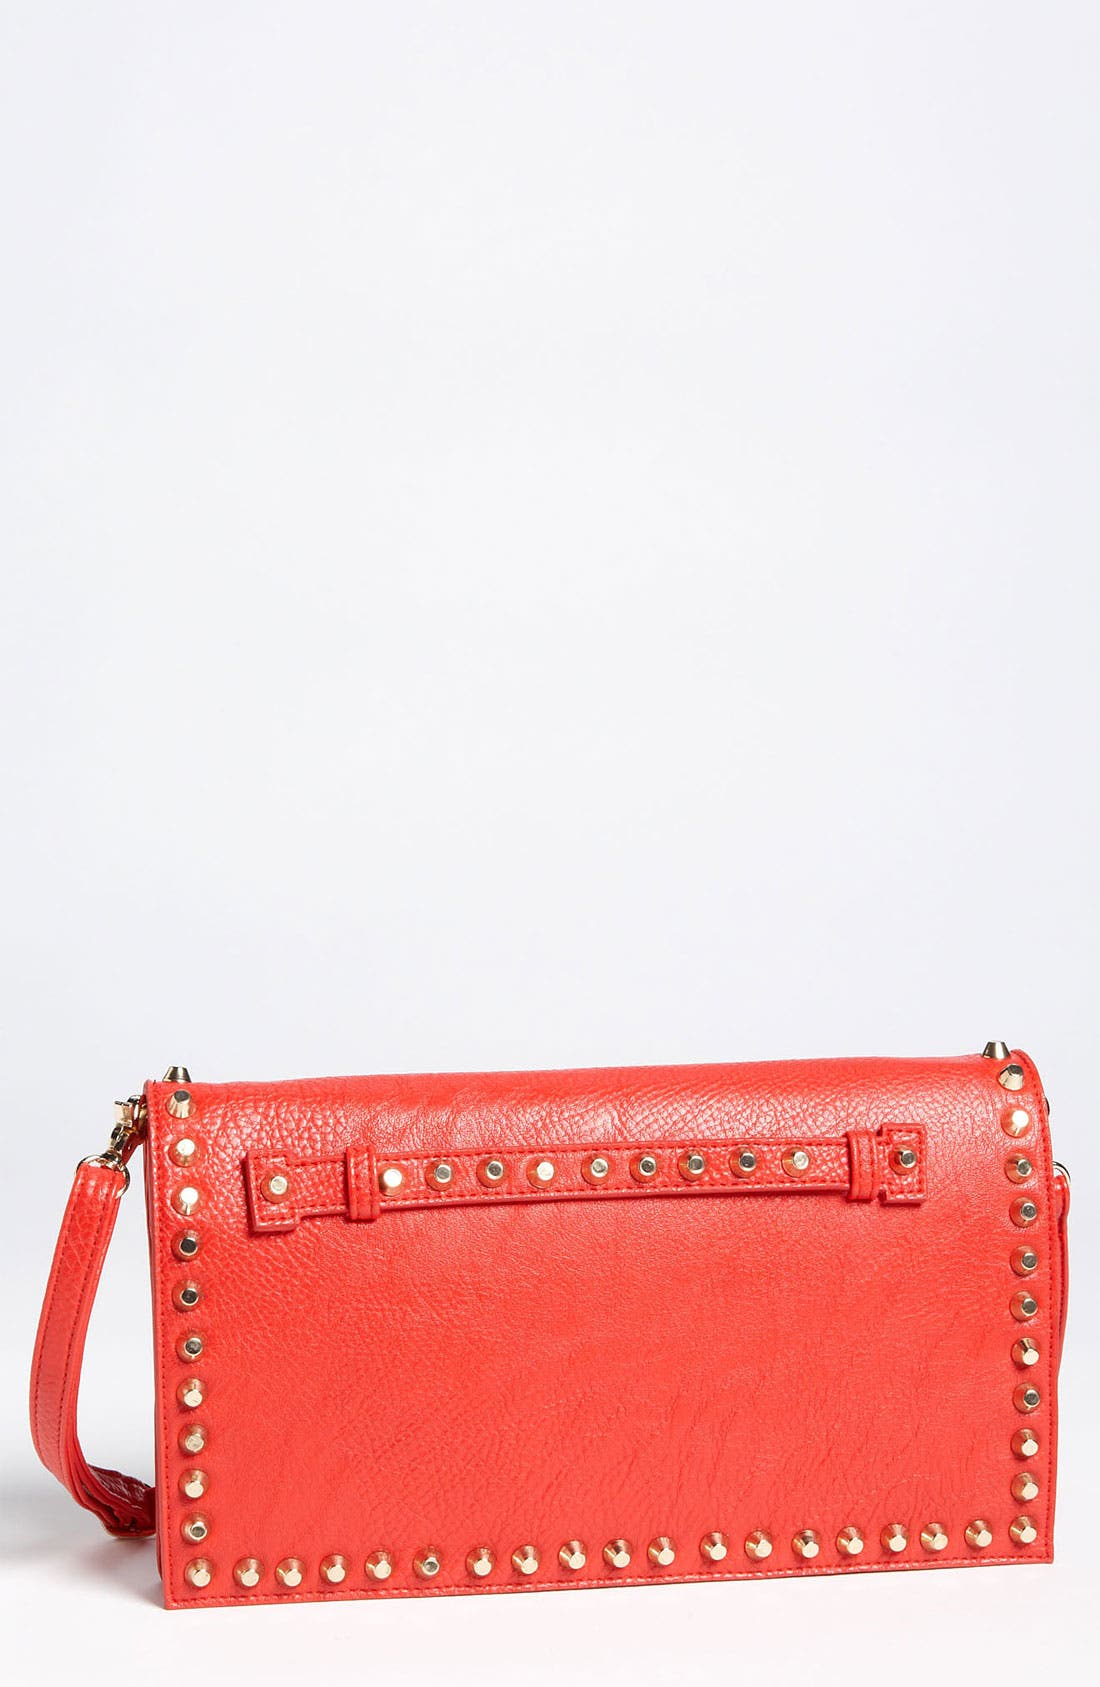 Main Image - Street Level Studded Convertible Clutch